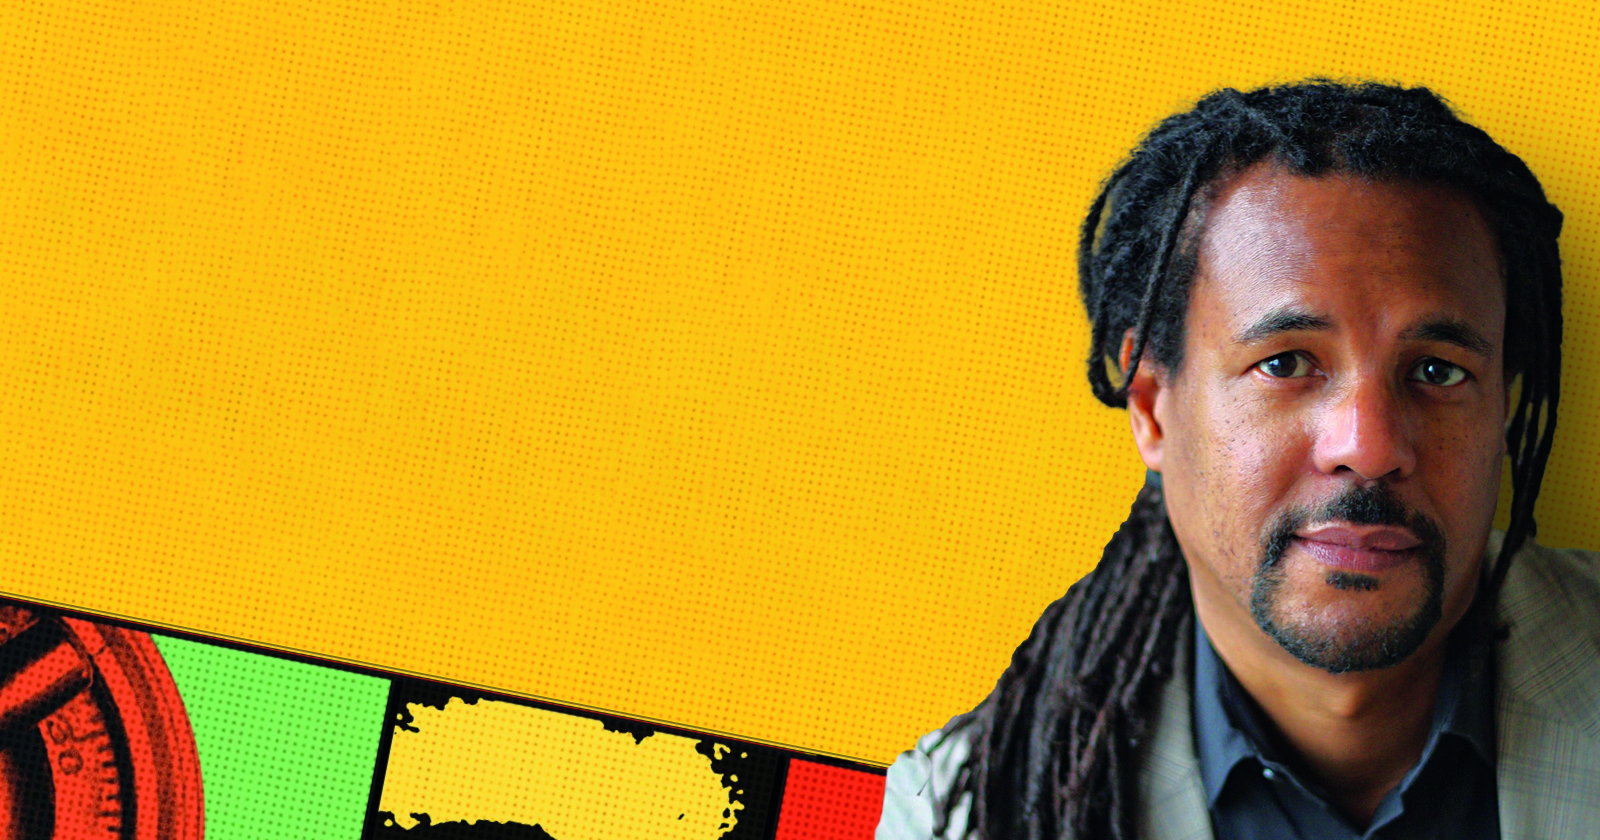 A NIGHT IN WITH COLSON WHITEHEAD